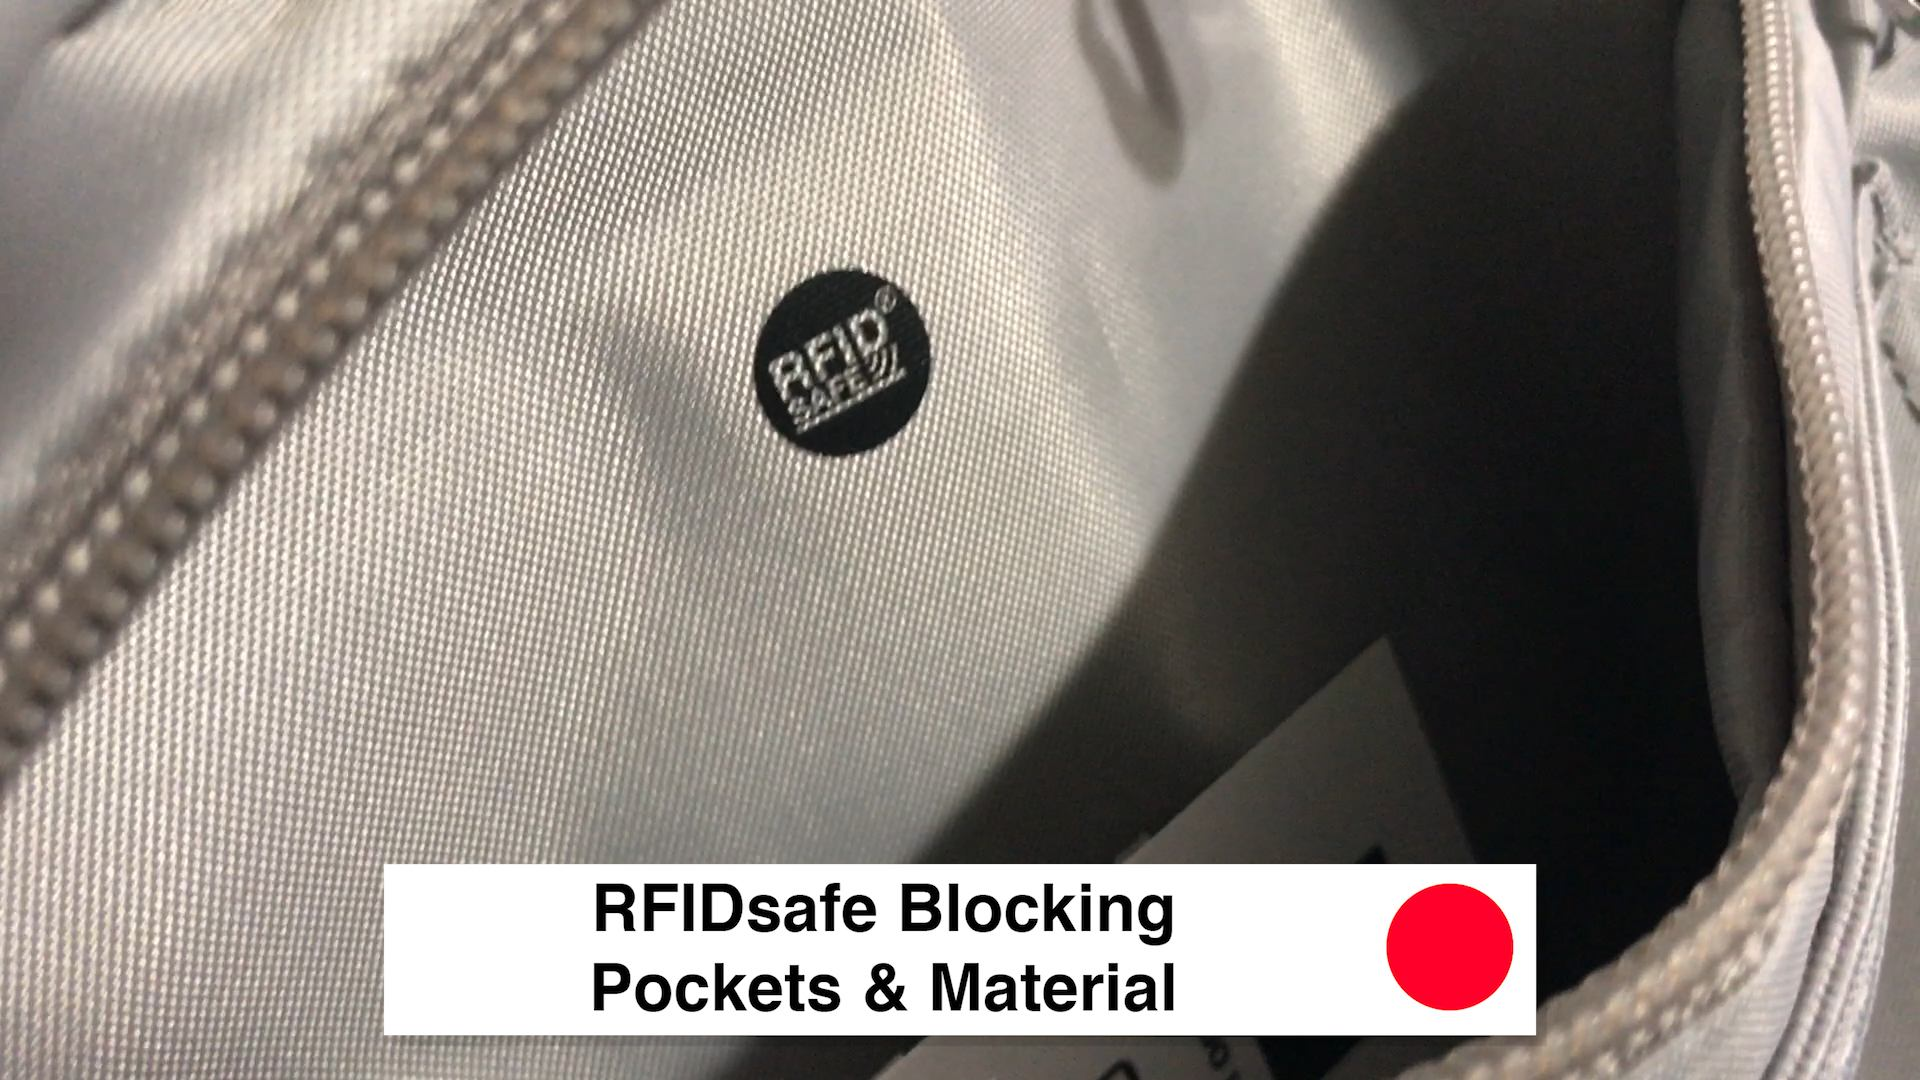 RFIDsafe Blocking Pockets and Material - Pacsafe Venturesafe X30 Travel Pack - Black Anti Theft Backpack